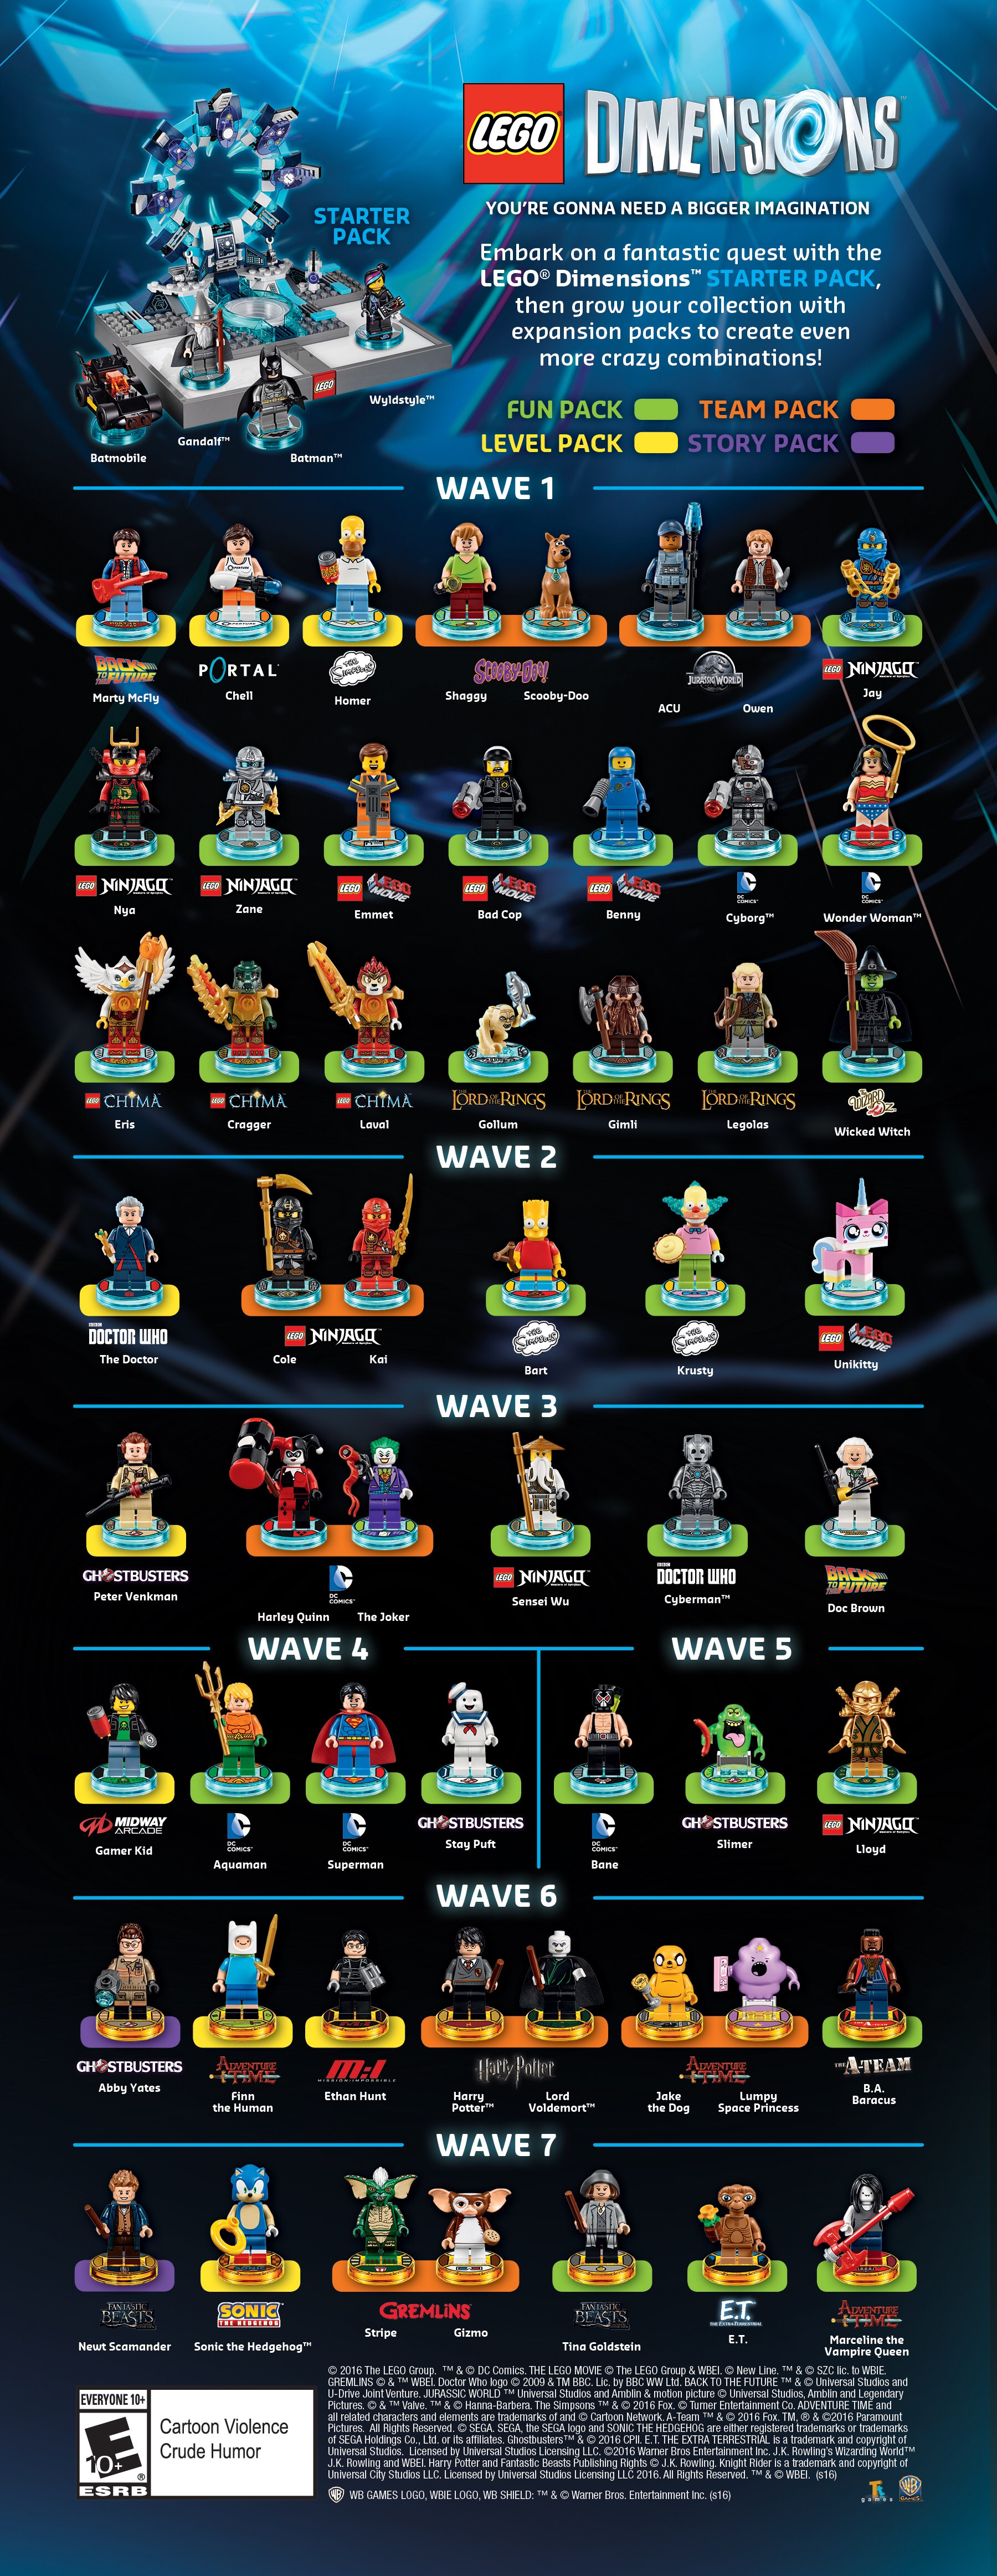 wave 7 5 lego dimensions wikia fandom powered by wikia. Black Bedroom Furniture Sets. Home Design Ideas